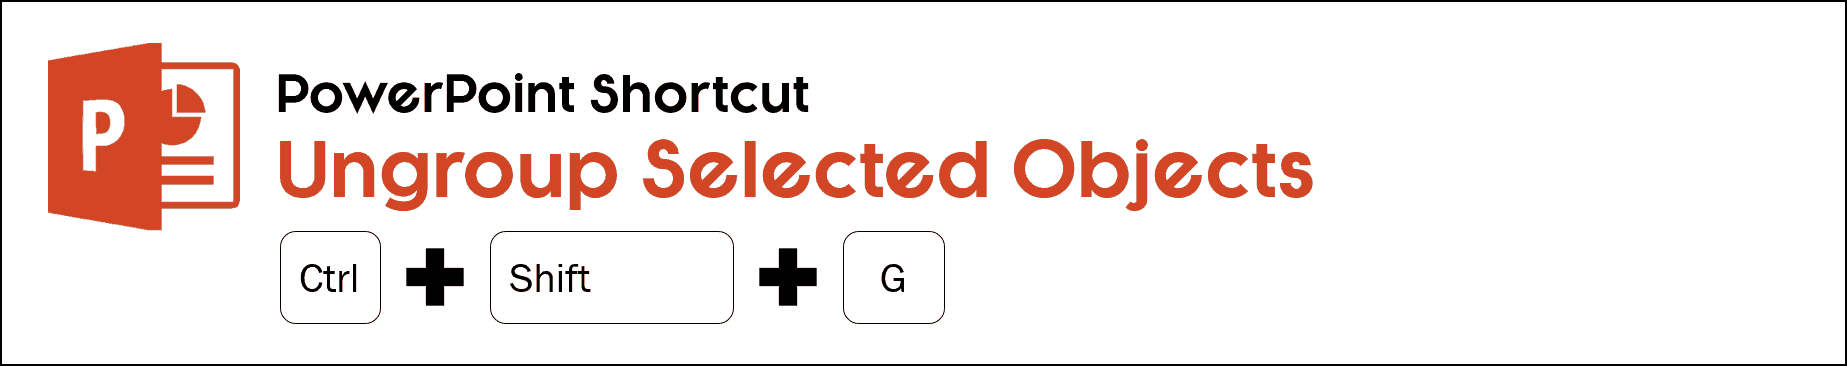 The ungroup shortcut in PowerPoint is control plus shift plus g on your keyboard